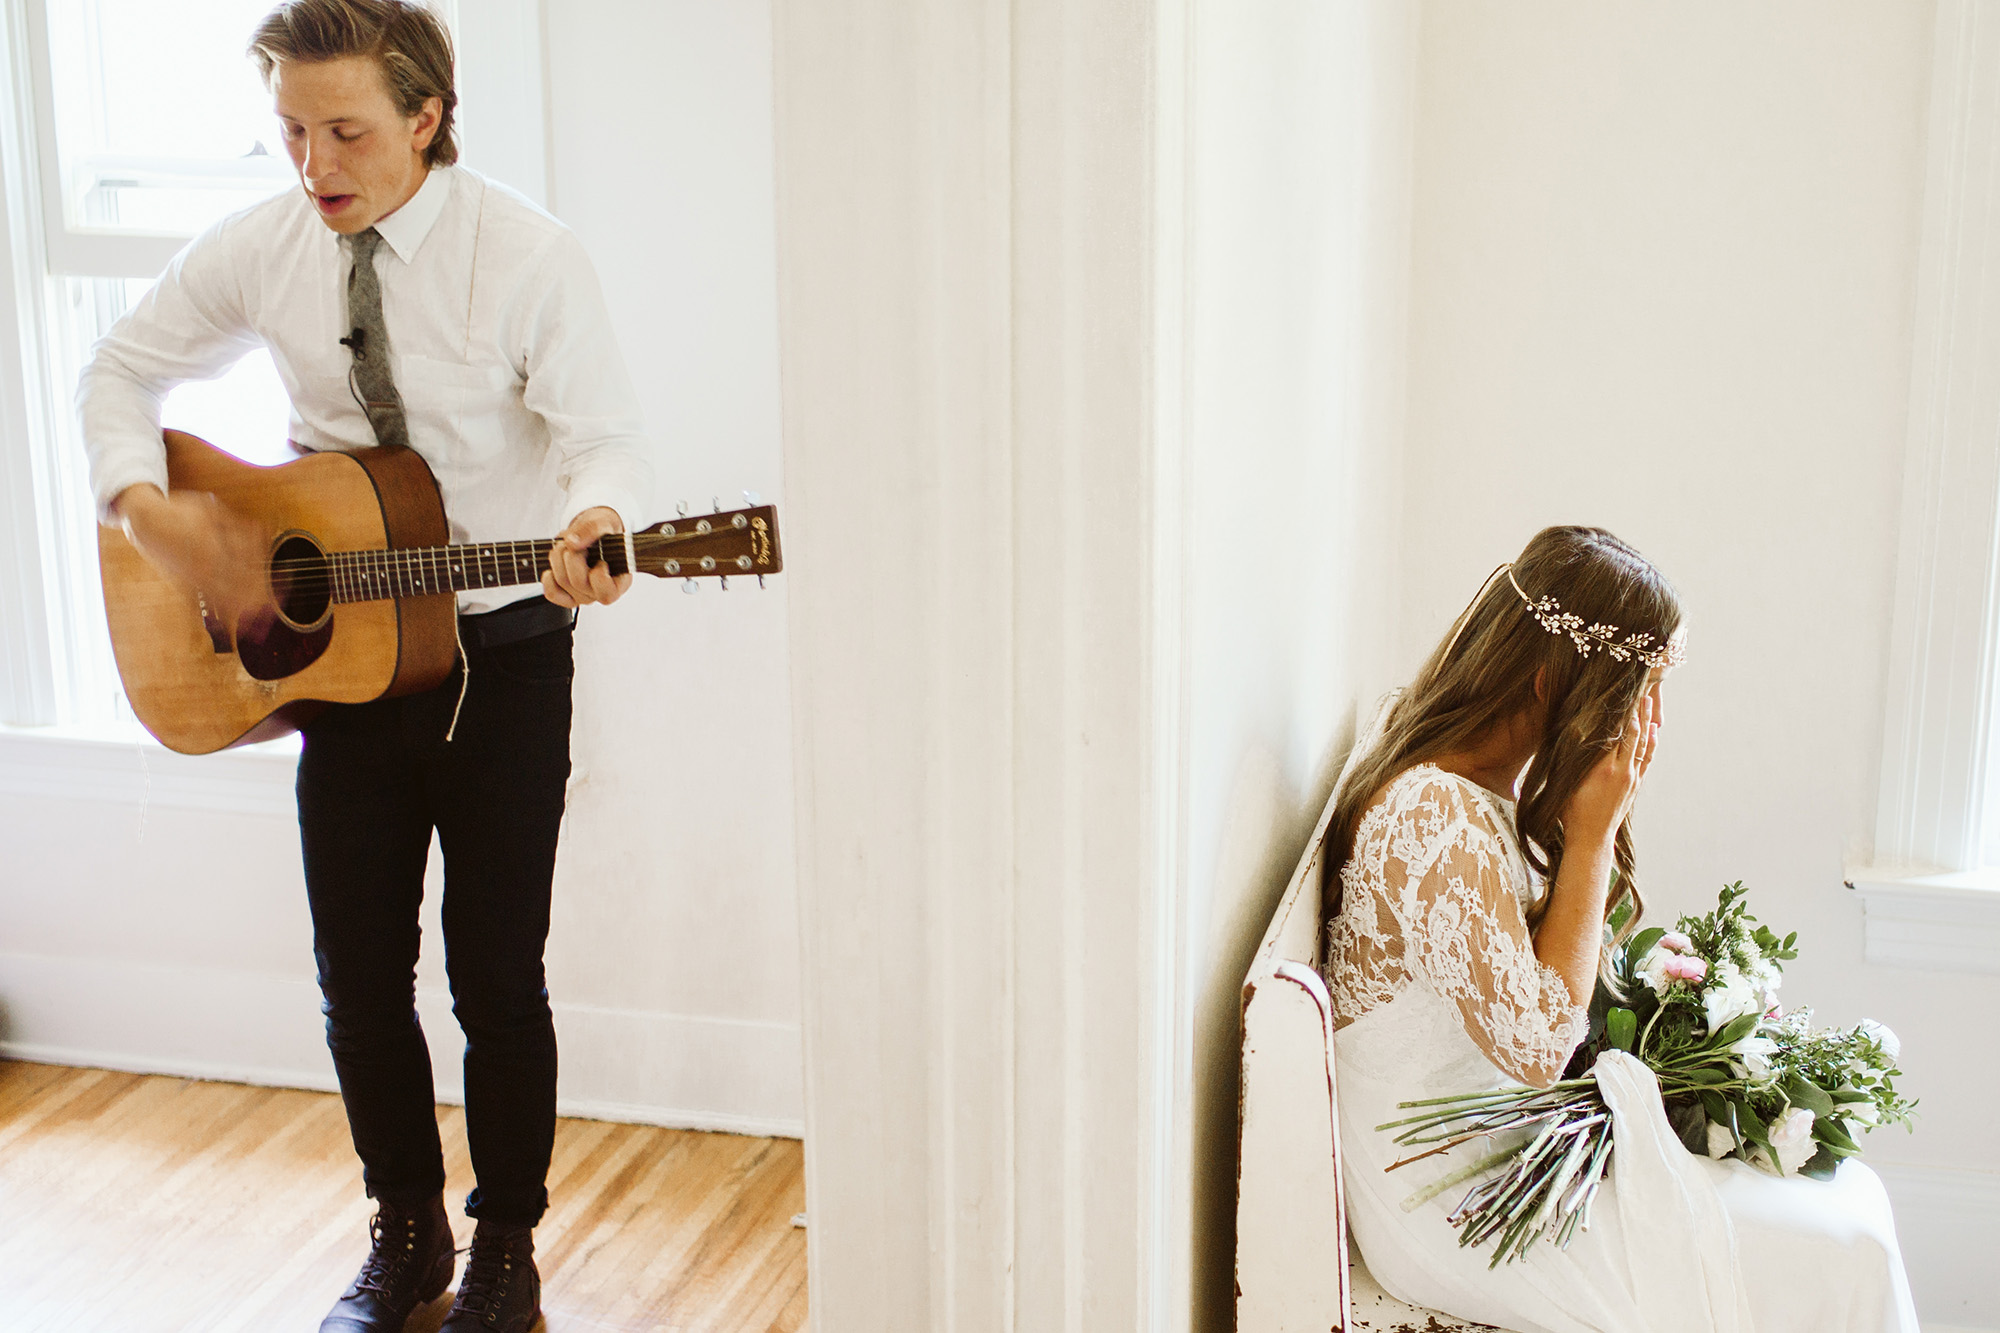 The groom is playing guitar for his bride who is sitting in the next room.